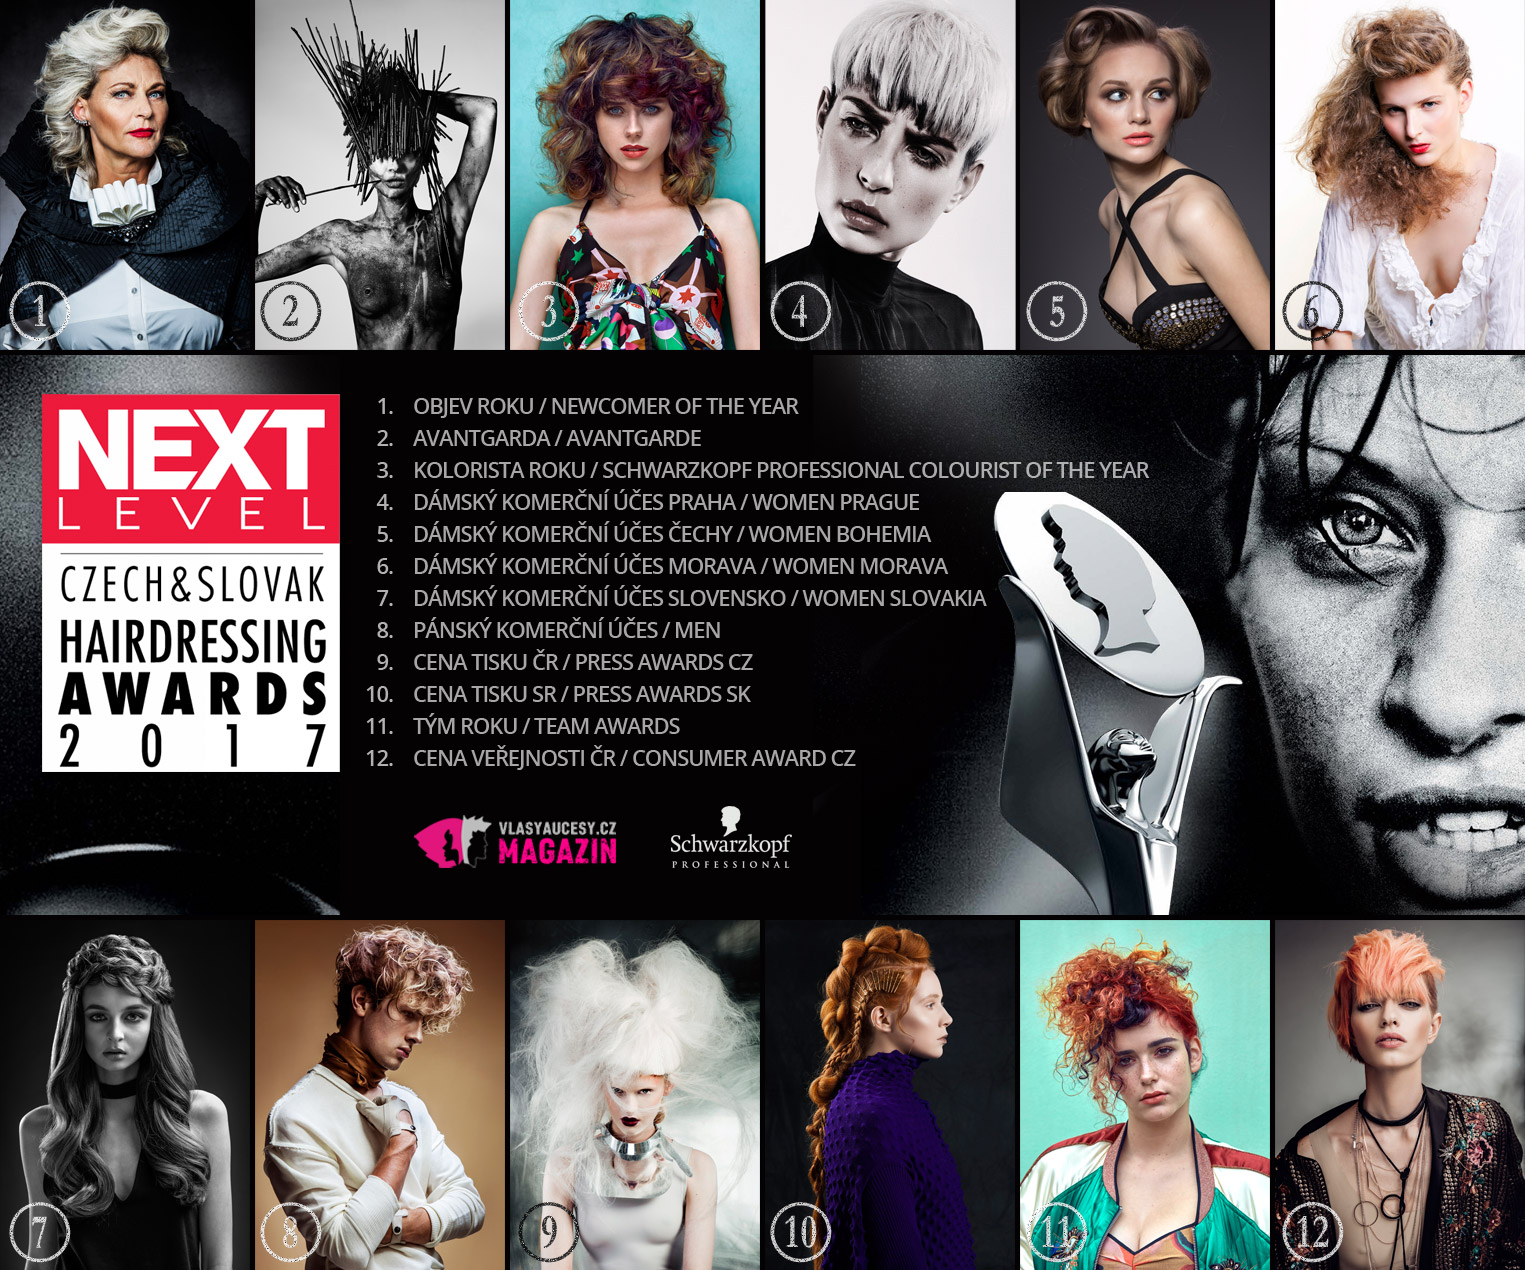 Czech and Slovak Hairdressing awards 2017 – Kadeřník roku 2017 vyhlásil nominace!